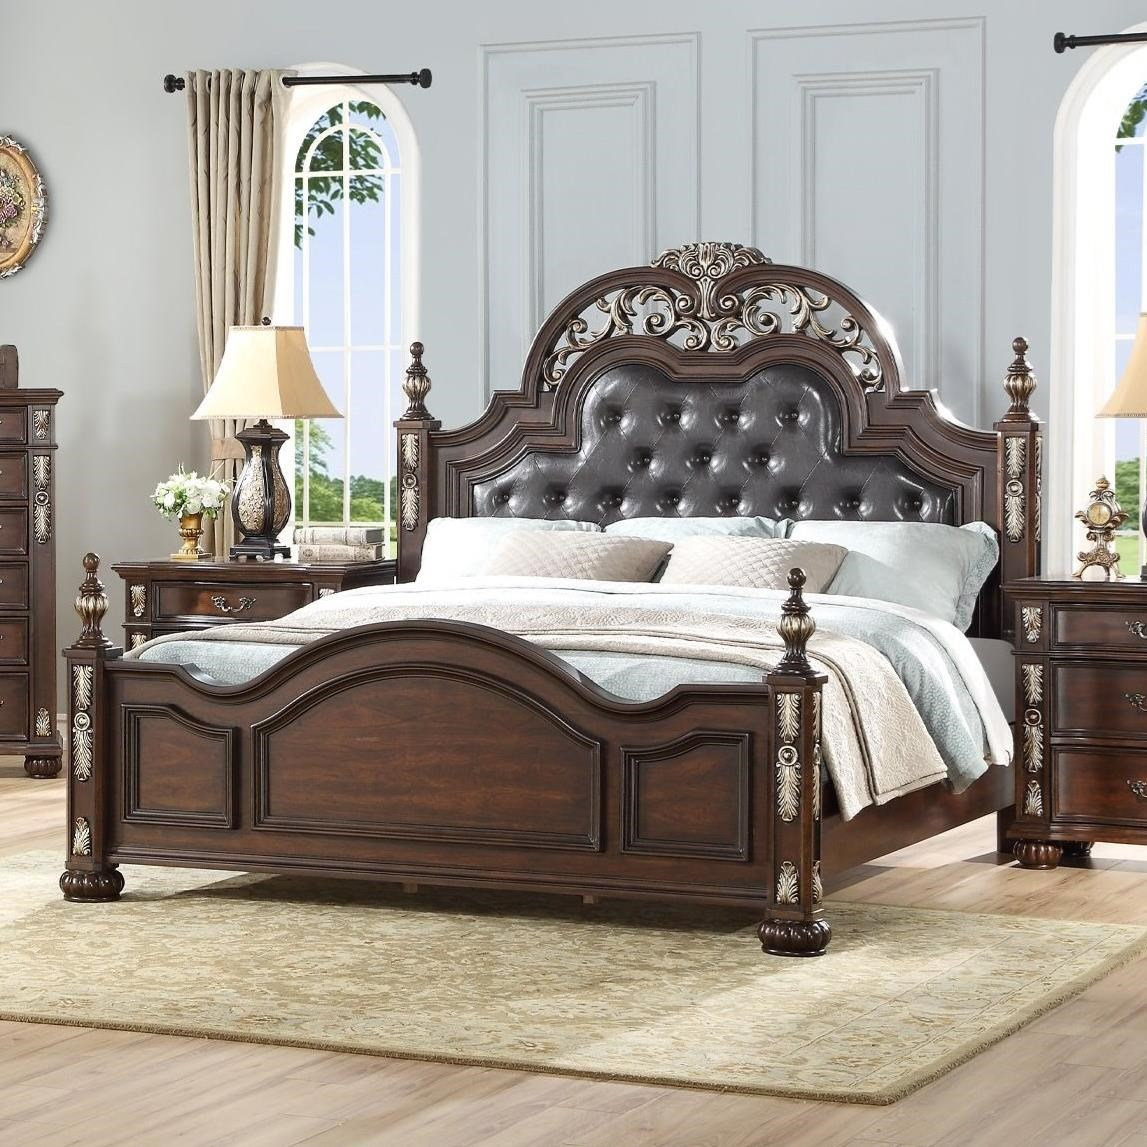 Maximus Cal King Poster Bed with Uph Headboard by New Classic at Beck's Furniture